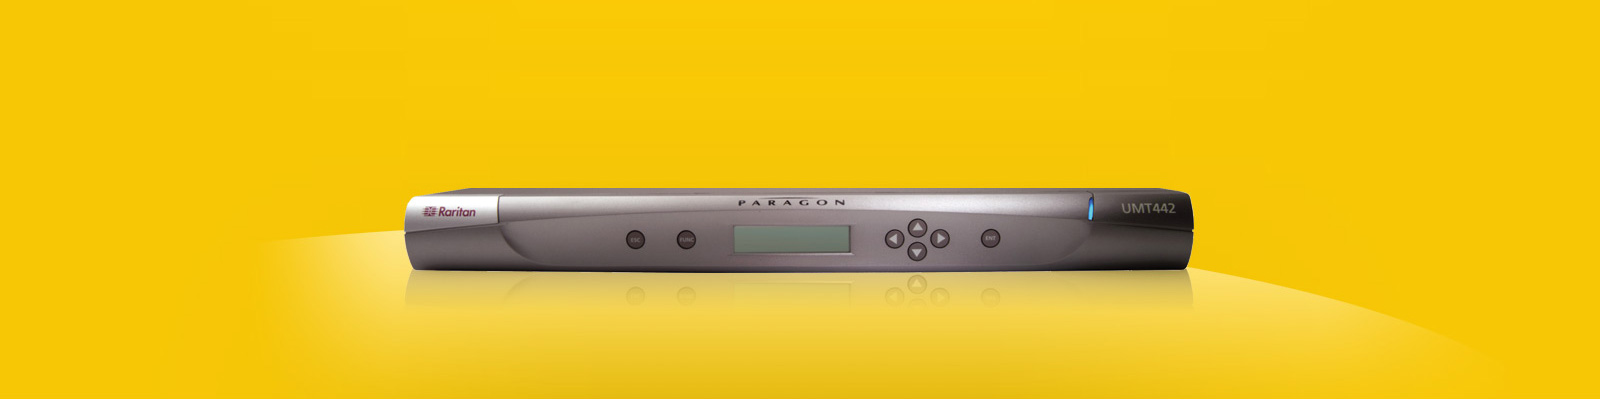 Raritan Paragon 64 Port 16 User High Density CATx KVM Switch - Multi-Platform: PS/2, USB, Sun and SGI